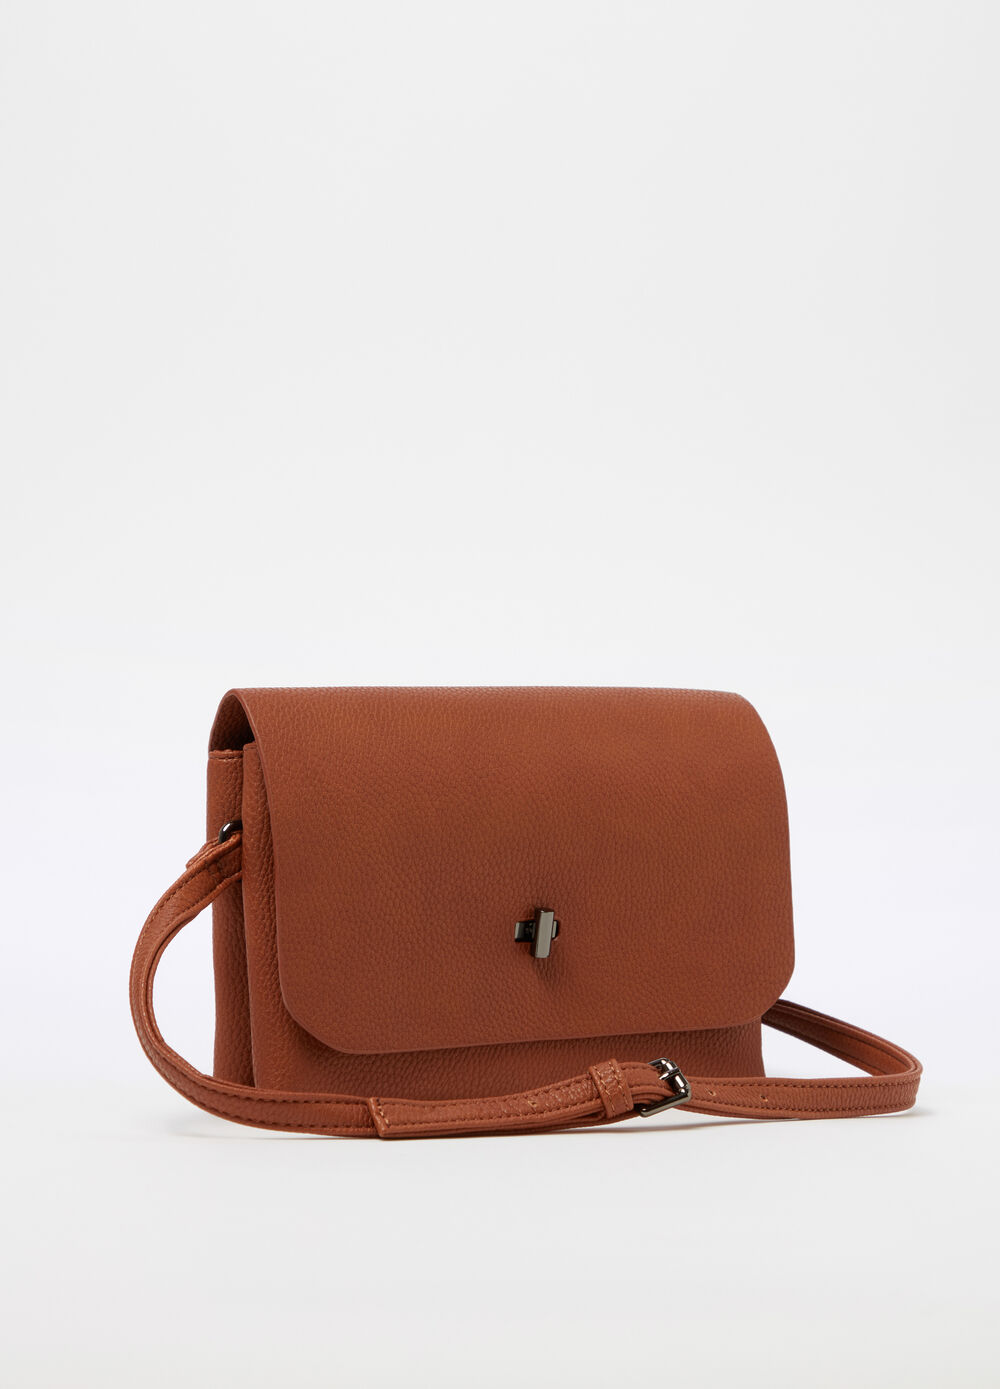 Leather-look clutch with shoulder strap